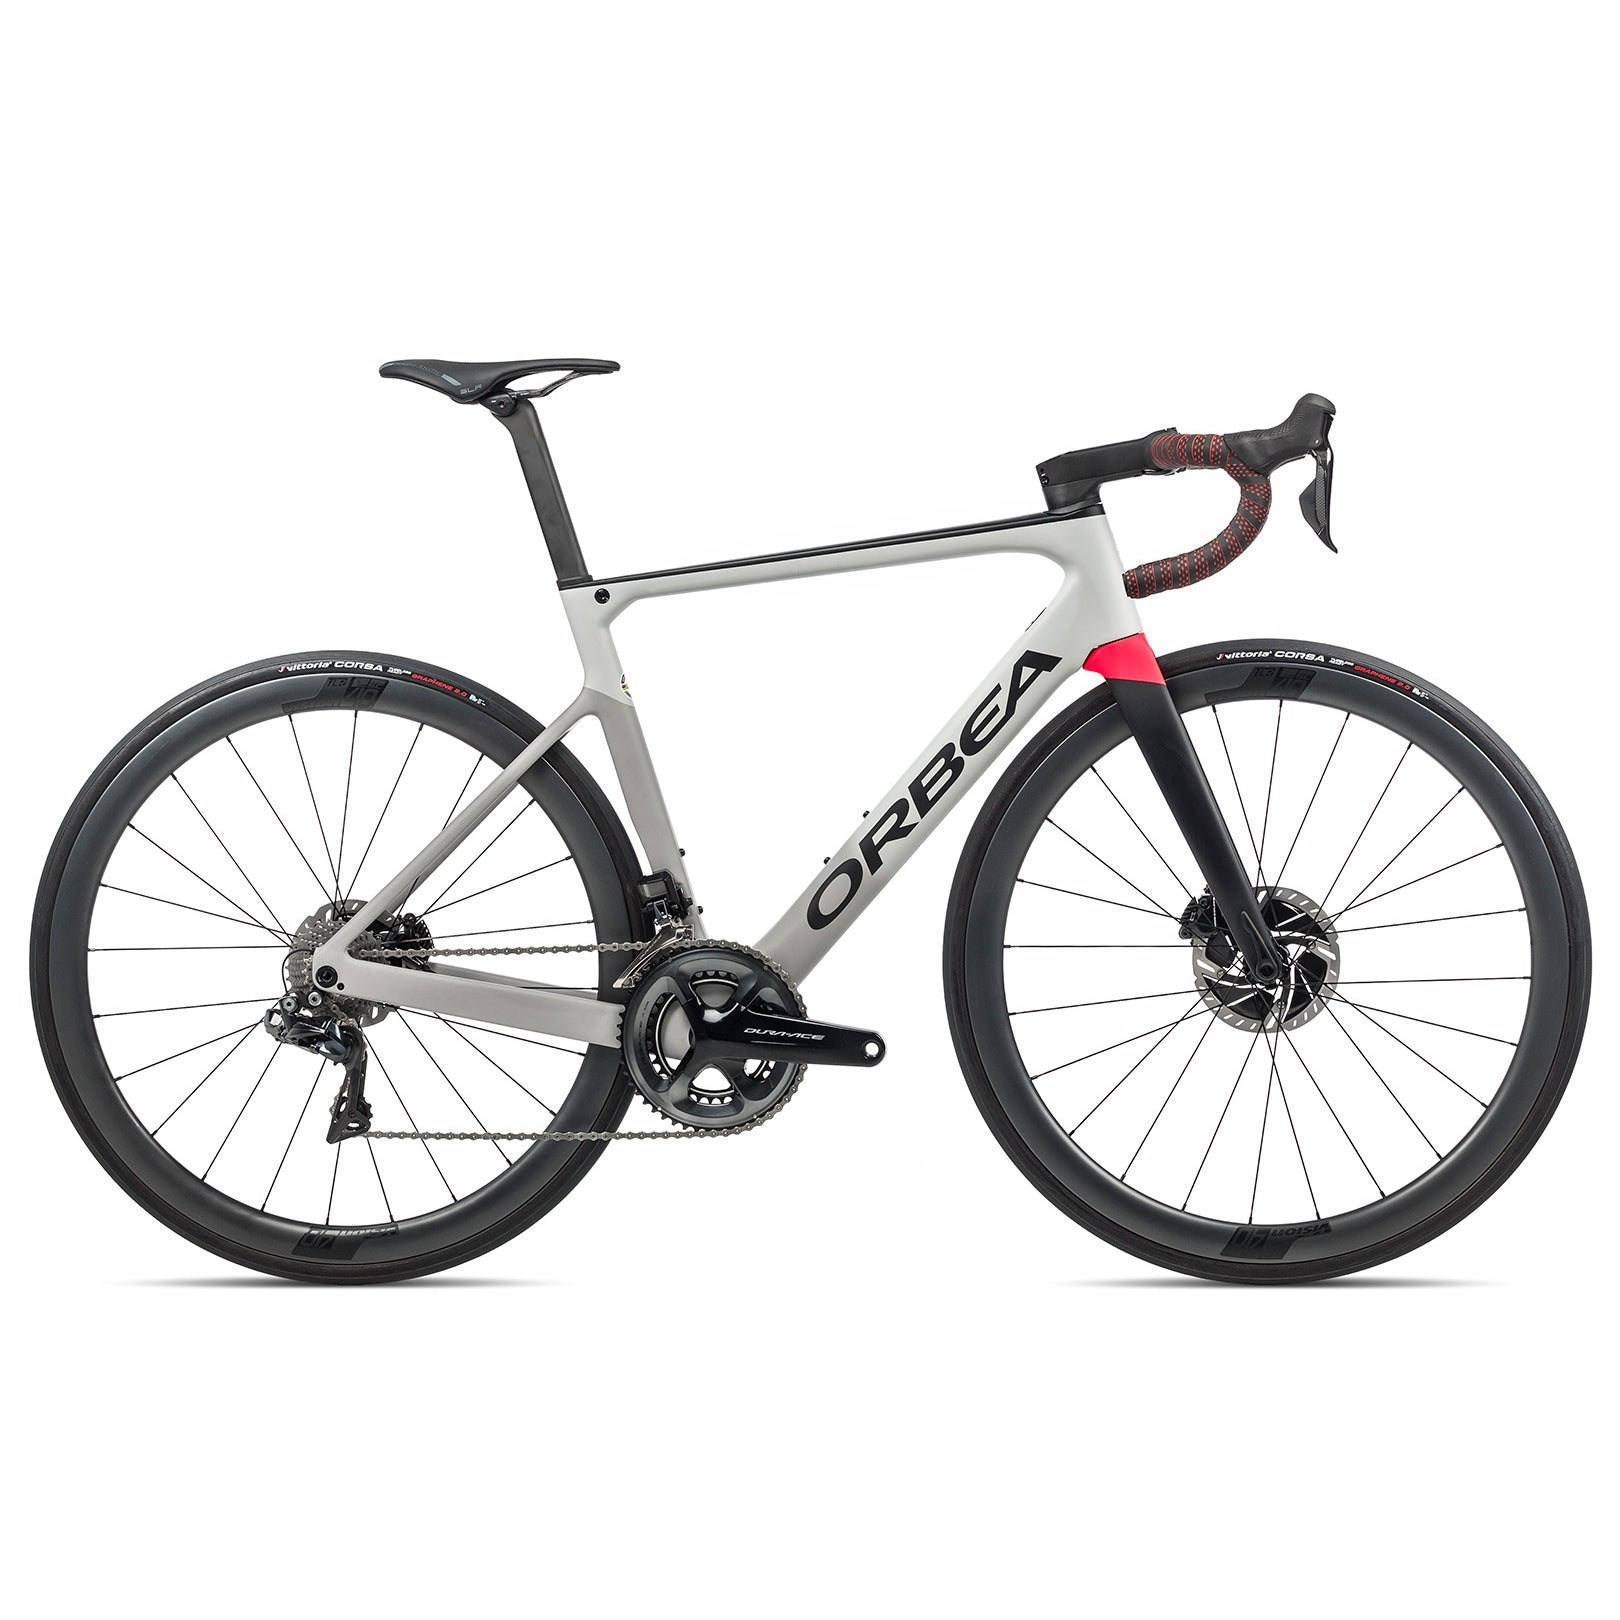 Orbea Orca M10i LTD Road Bike